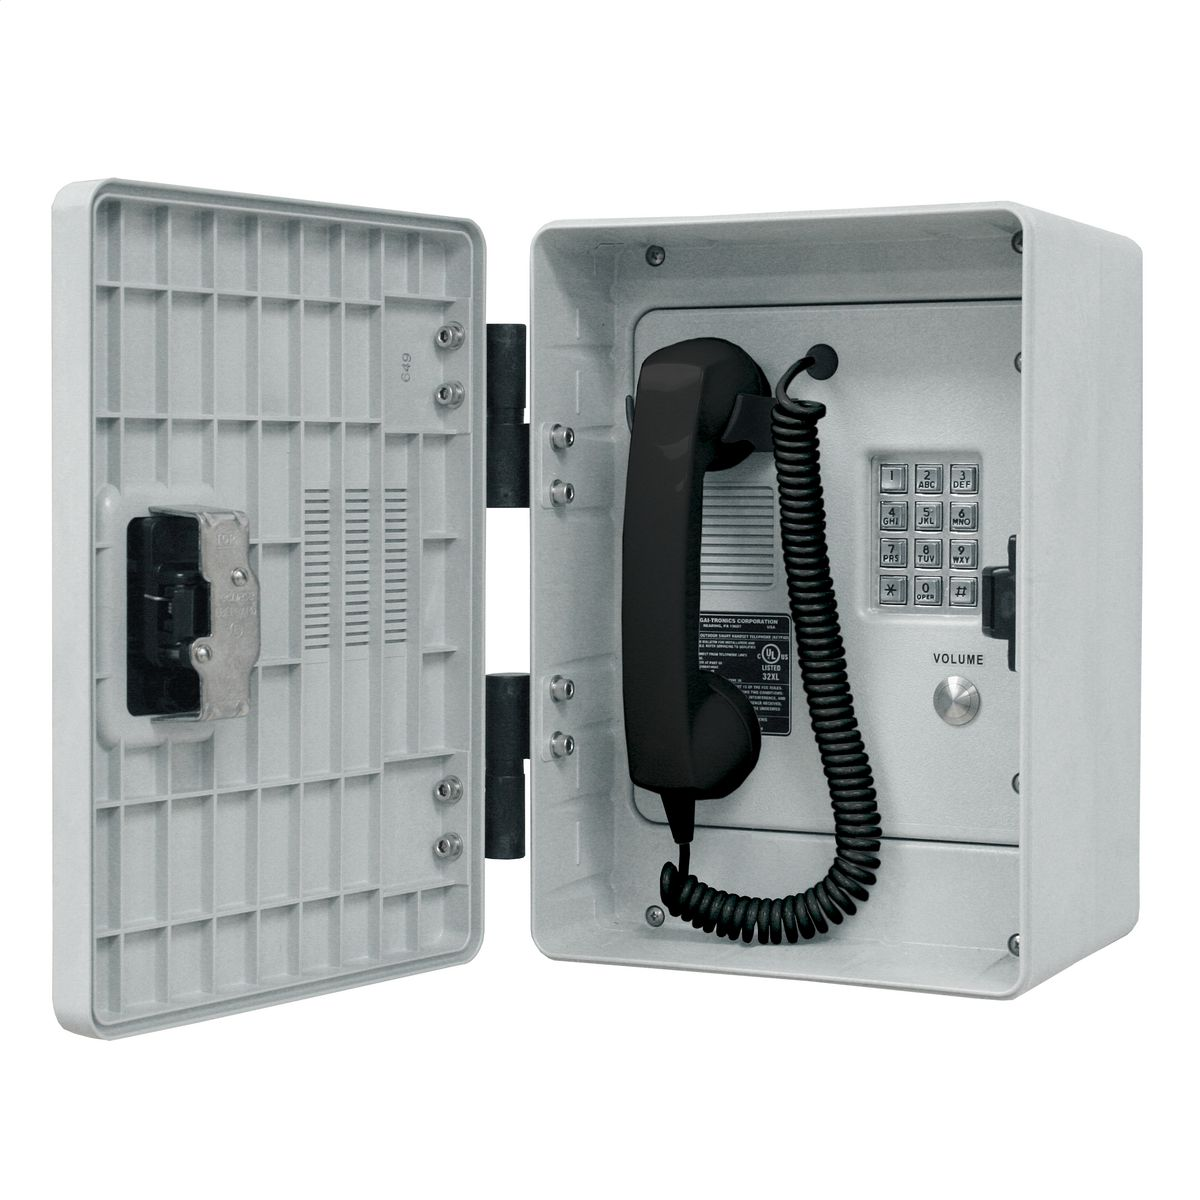 Outdoor Rugged Telephone Voip Keypad